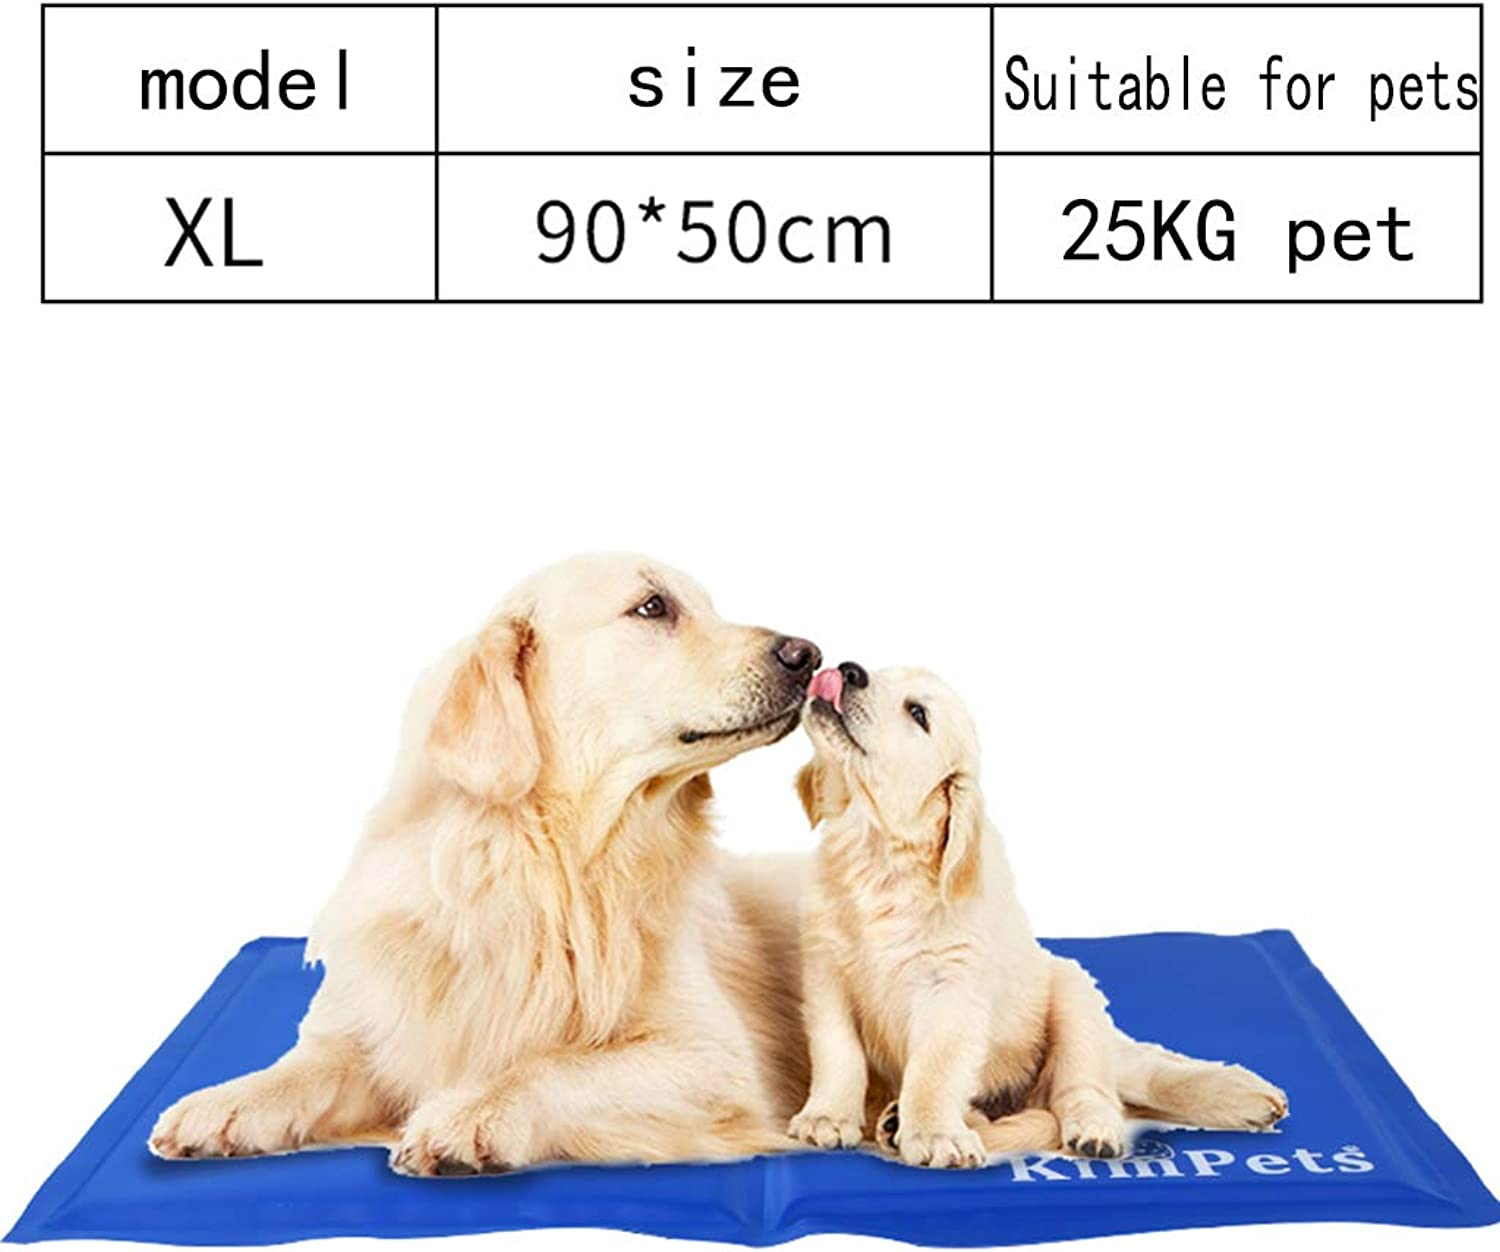 Dog Cooling Mat  Summer Gel Cooling Pad for Dogs and Cats  Avoid Overheating, Ideal for Home and Travel,XL